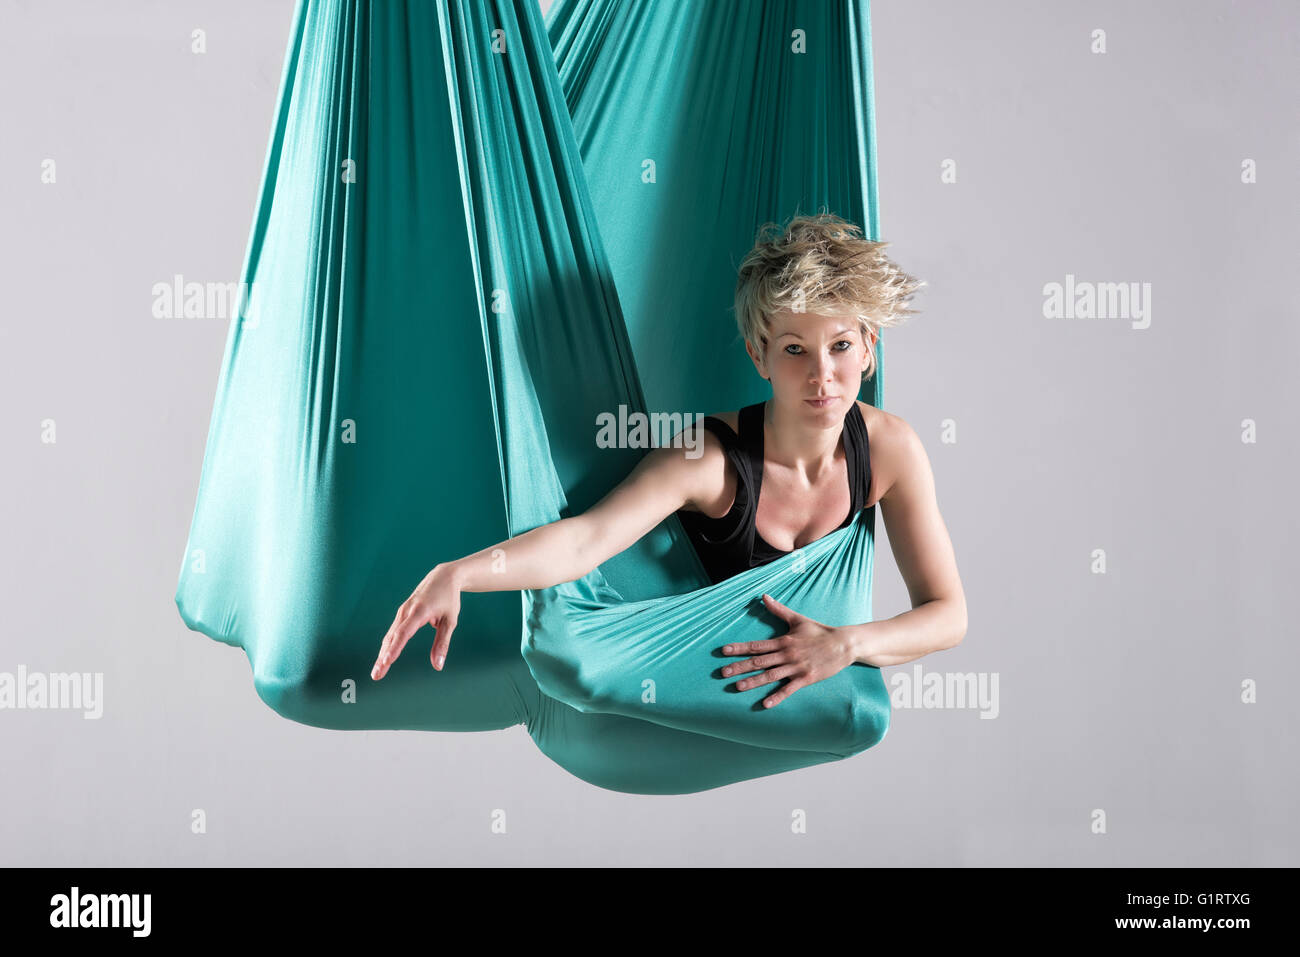 Single athletic woman doing intense leg and hip stretching exercises wrapped in aerial yoga blanket suspended from - Stock Image